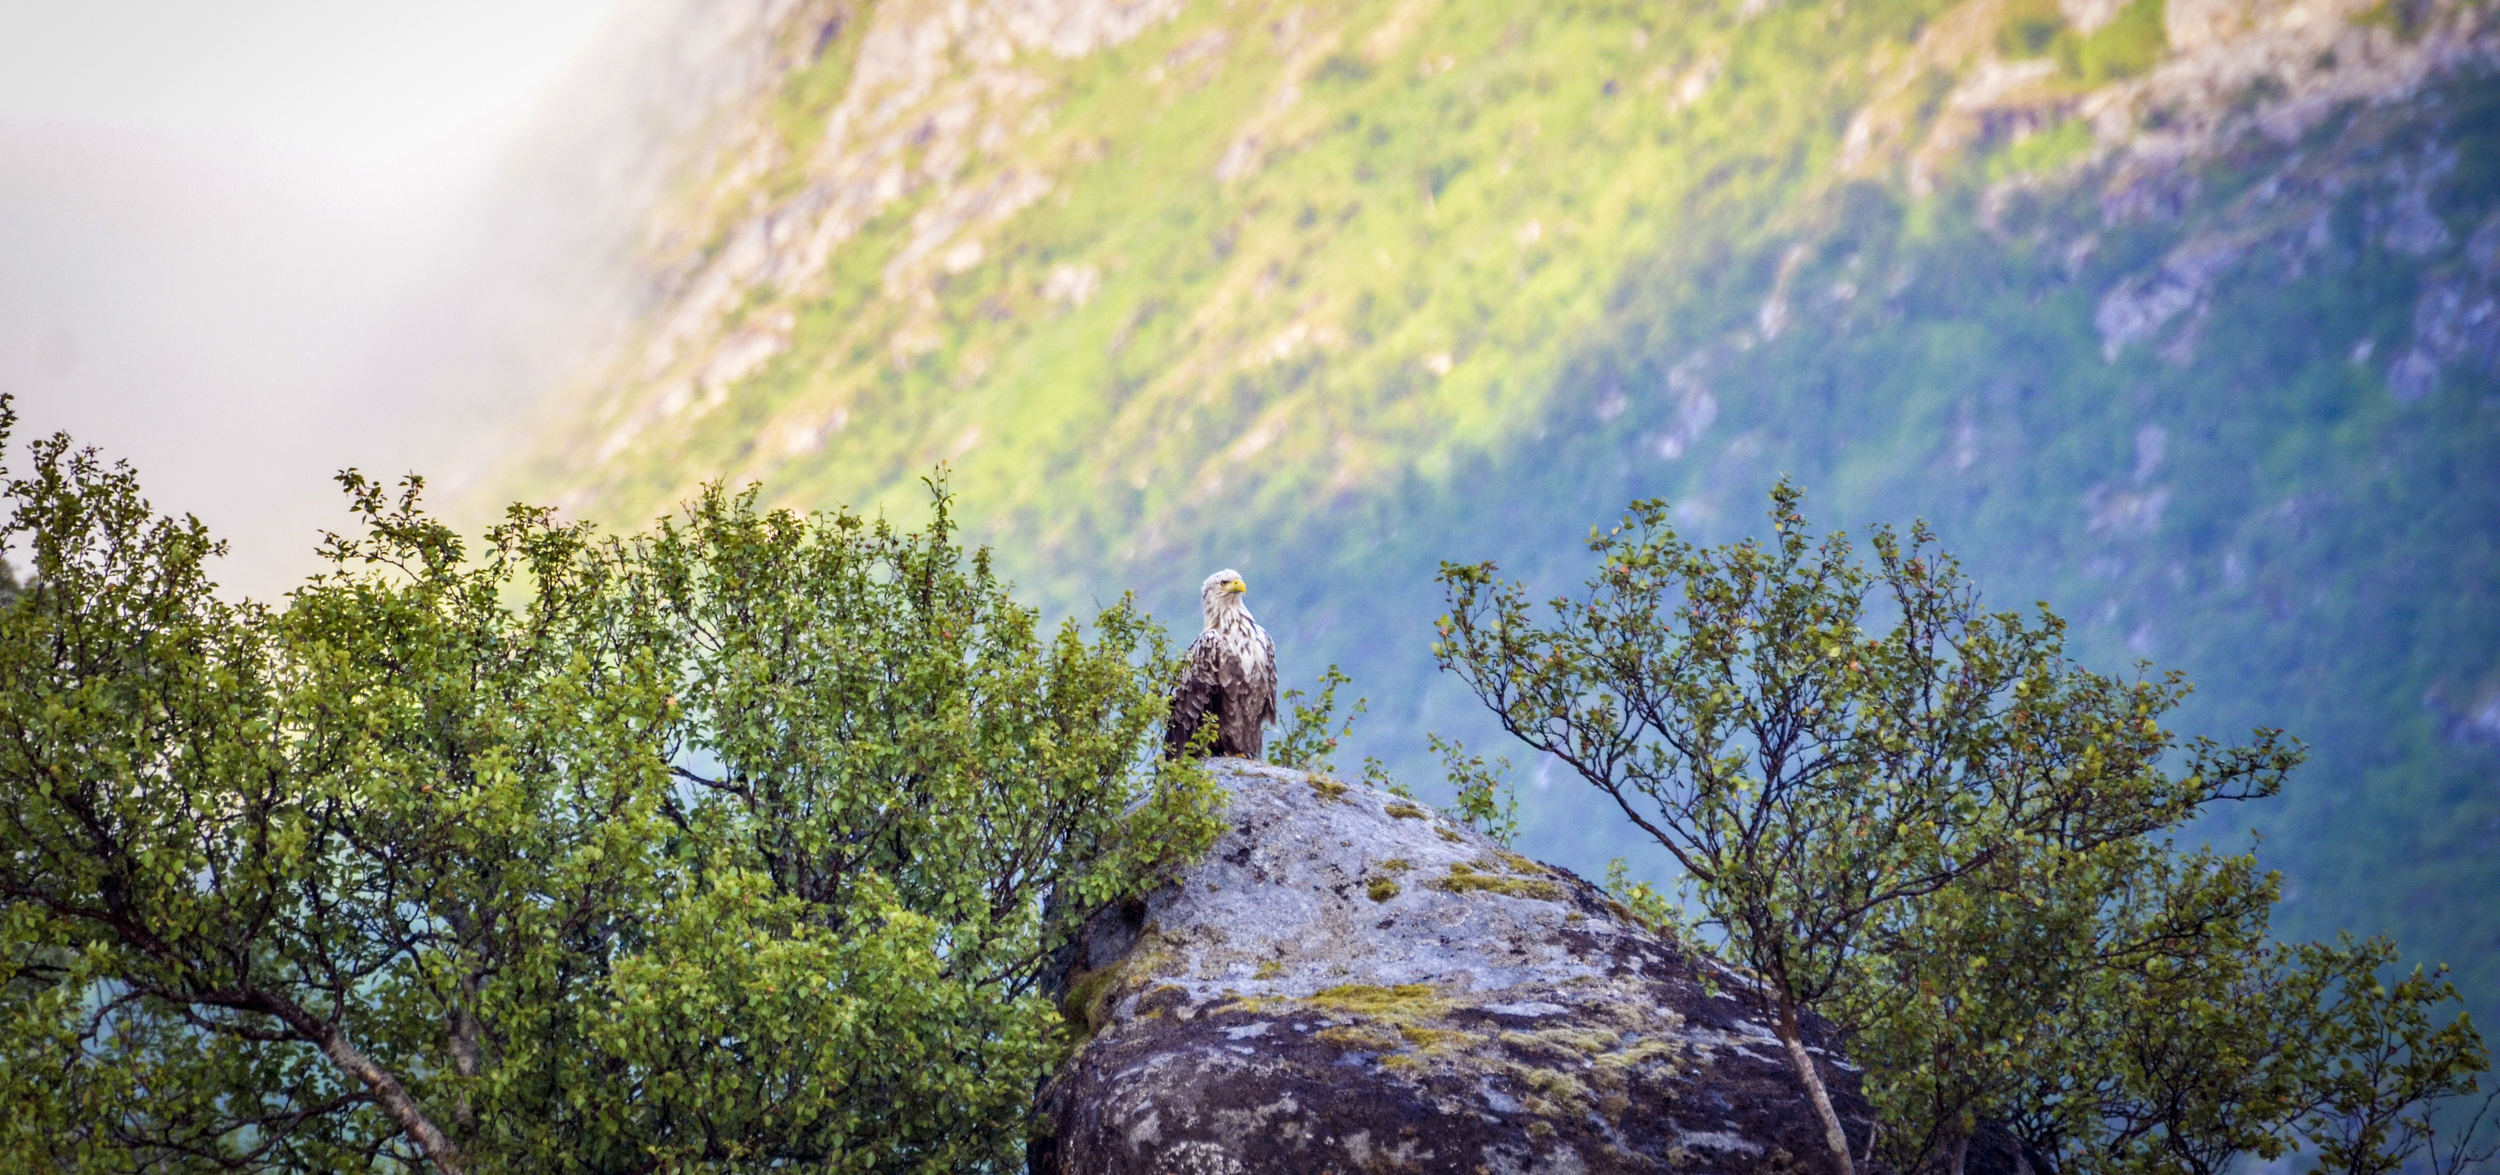 While-tailed eagle in midnight sun by Inga